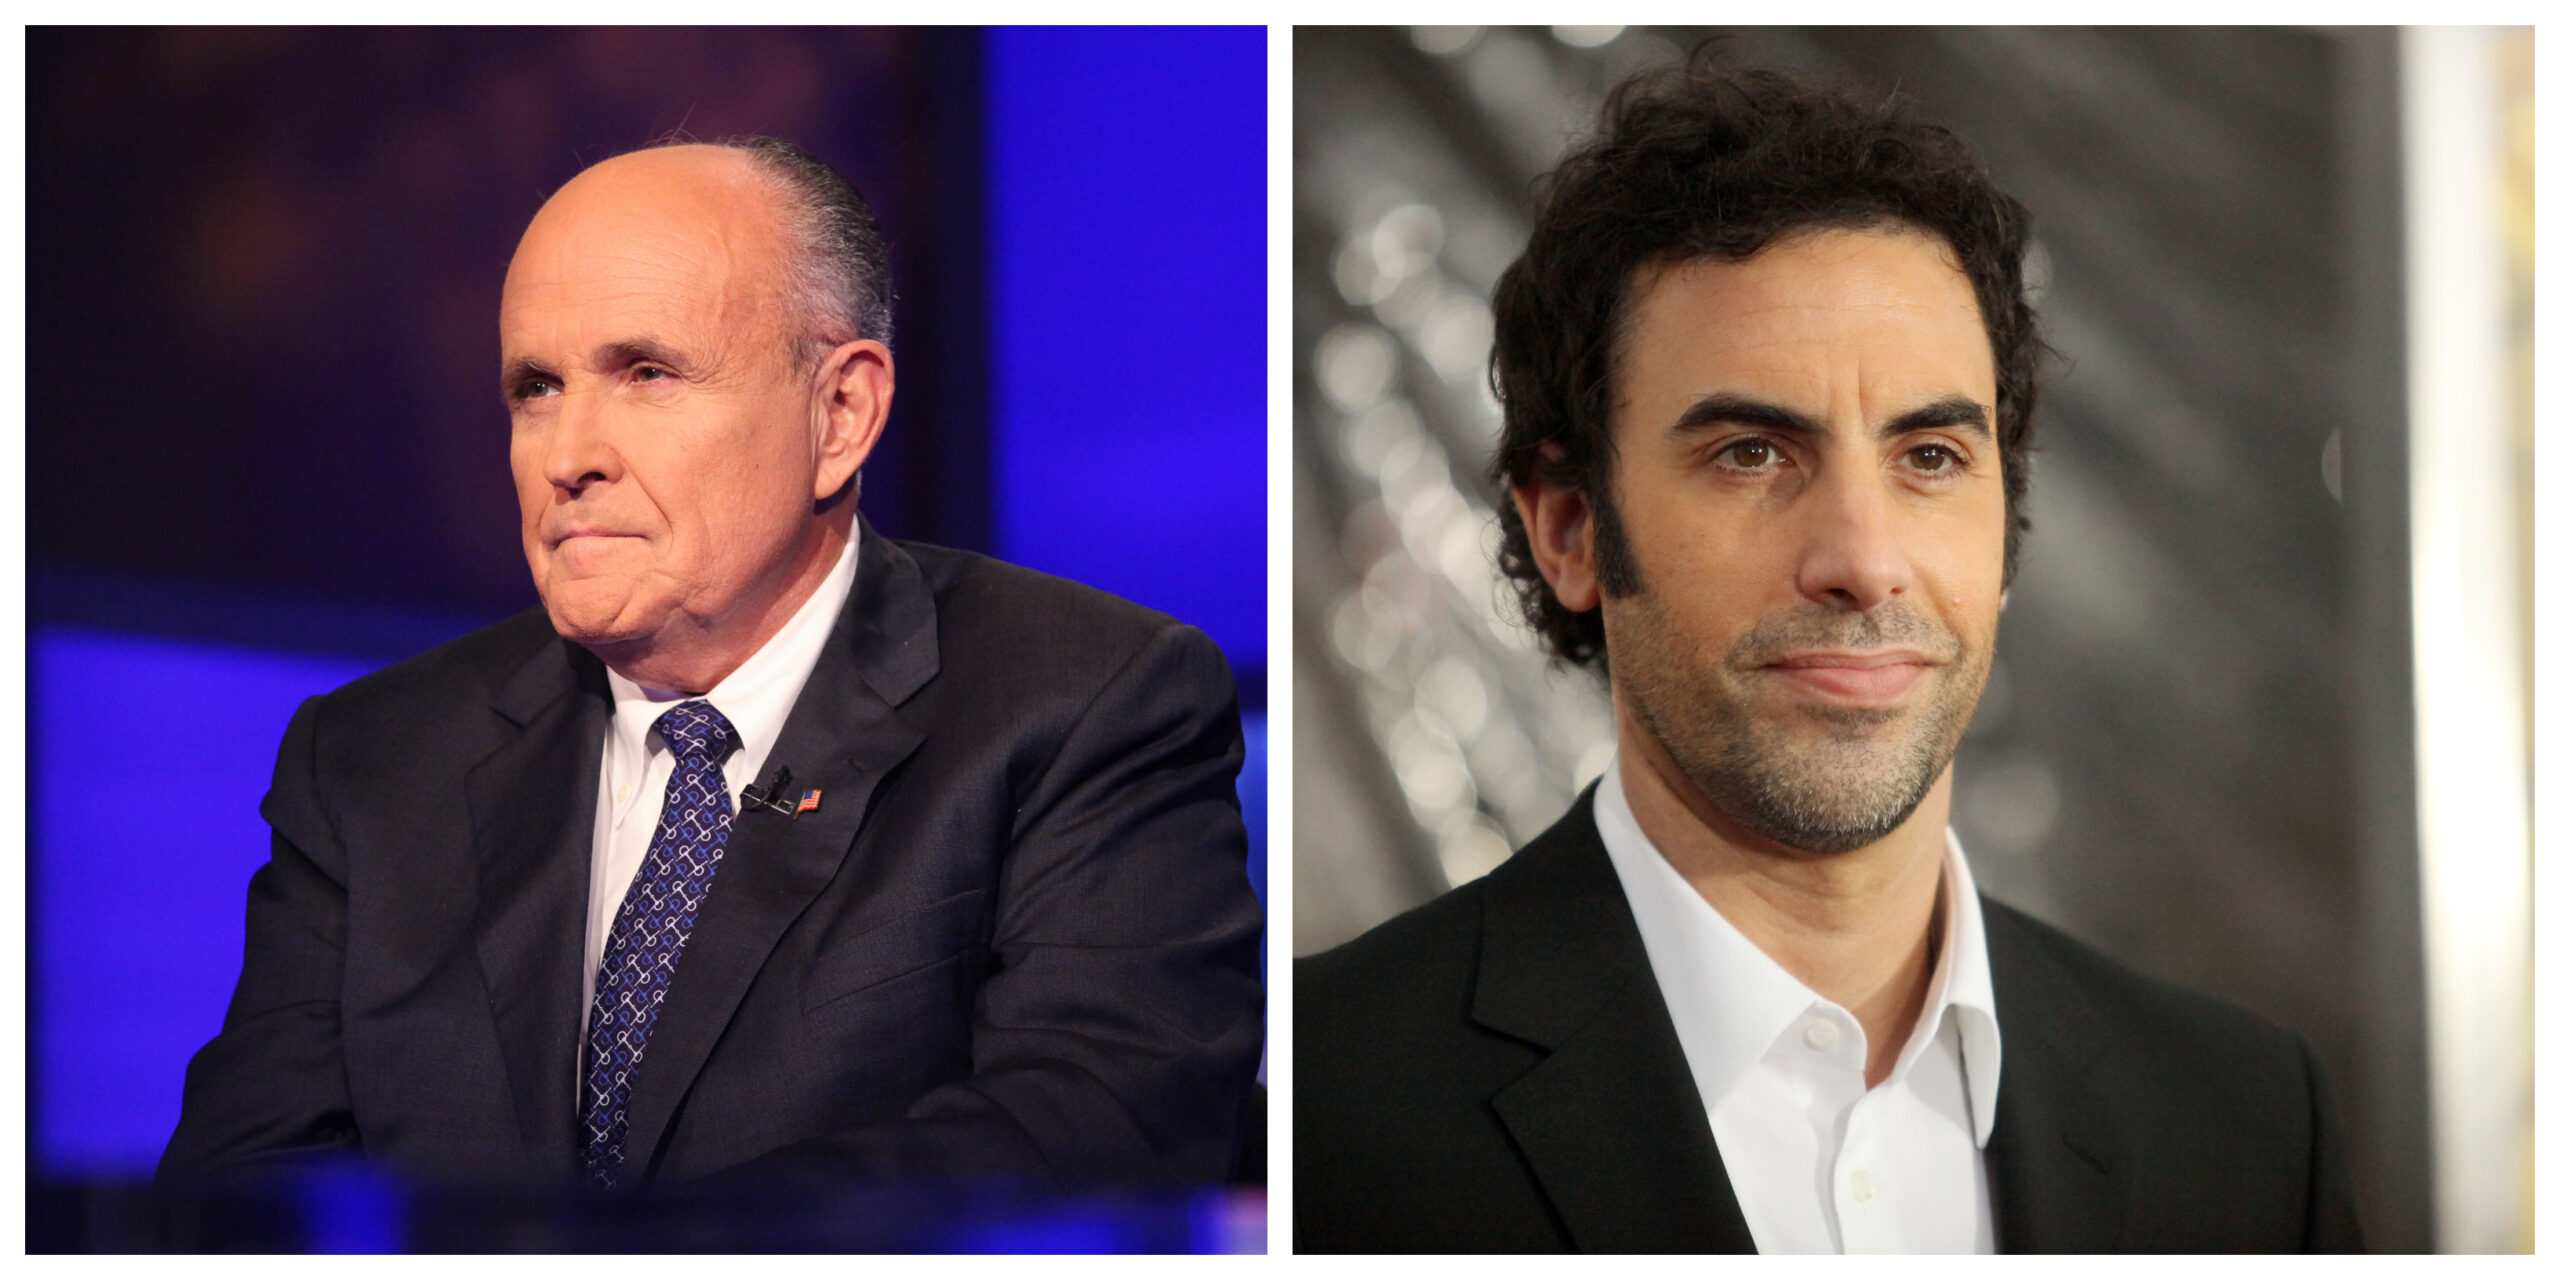 Rudy Giuliani calls the cops on Sacha Baron Cohen over prank interview